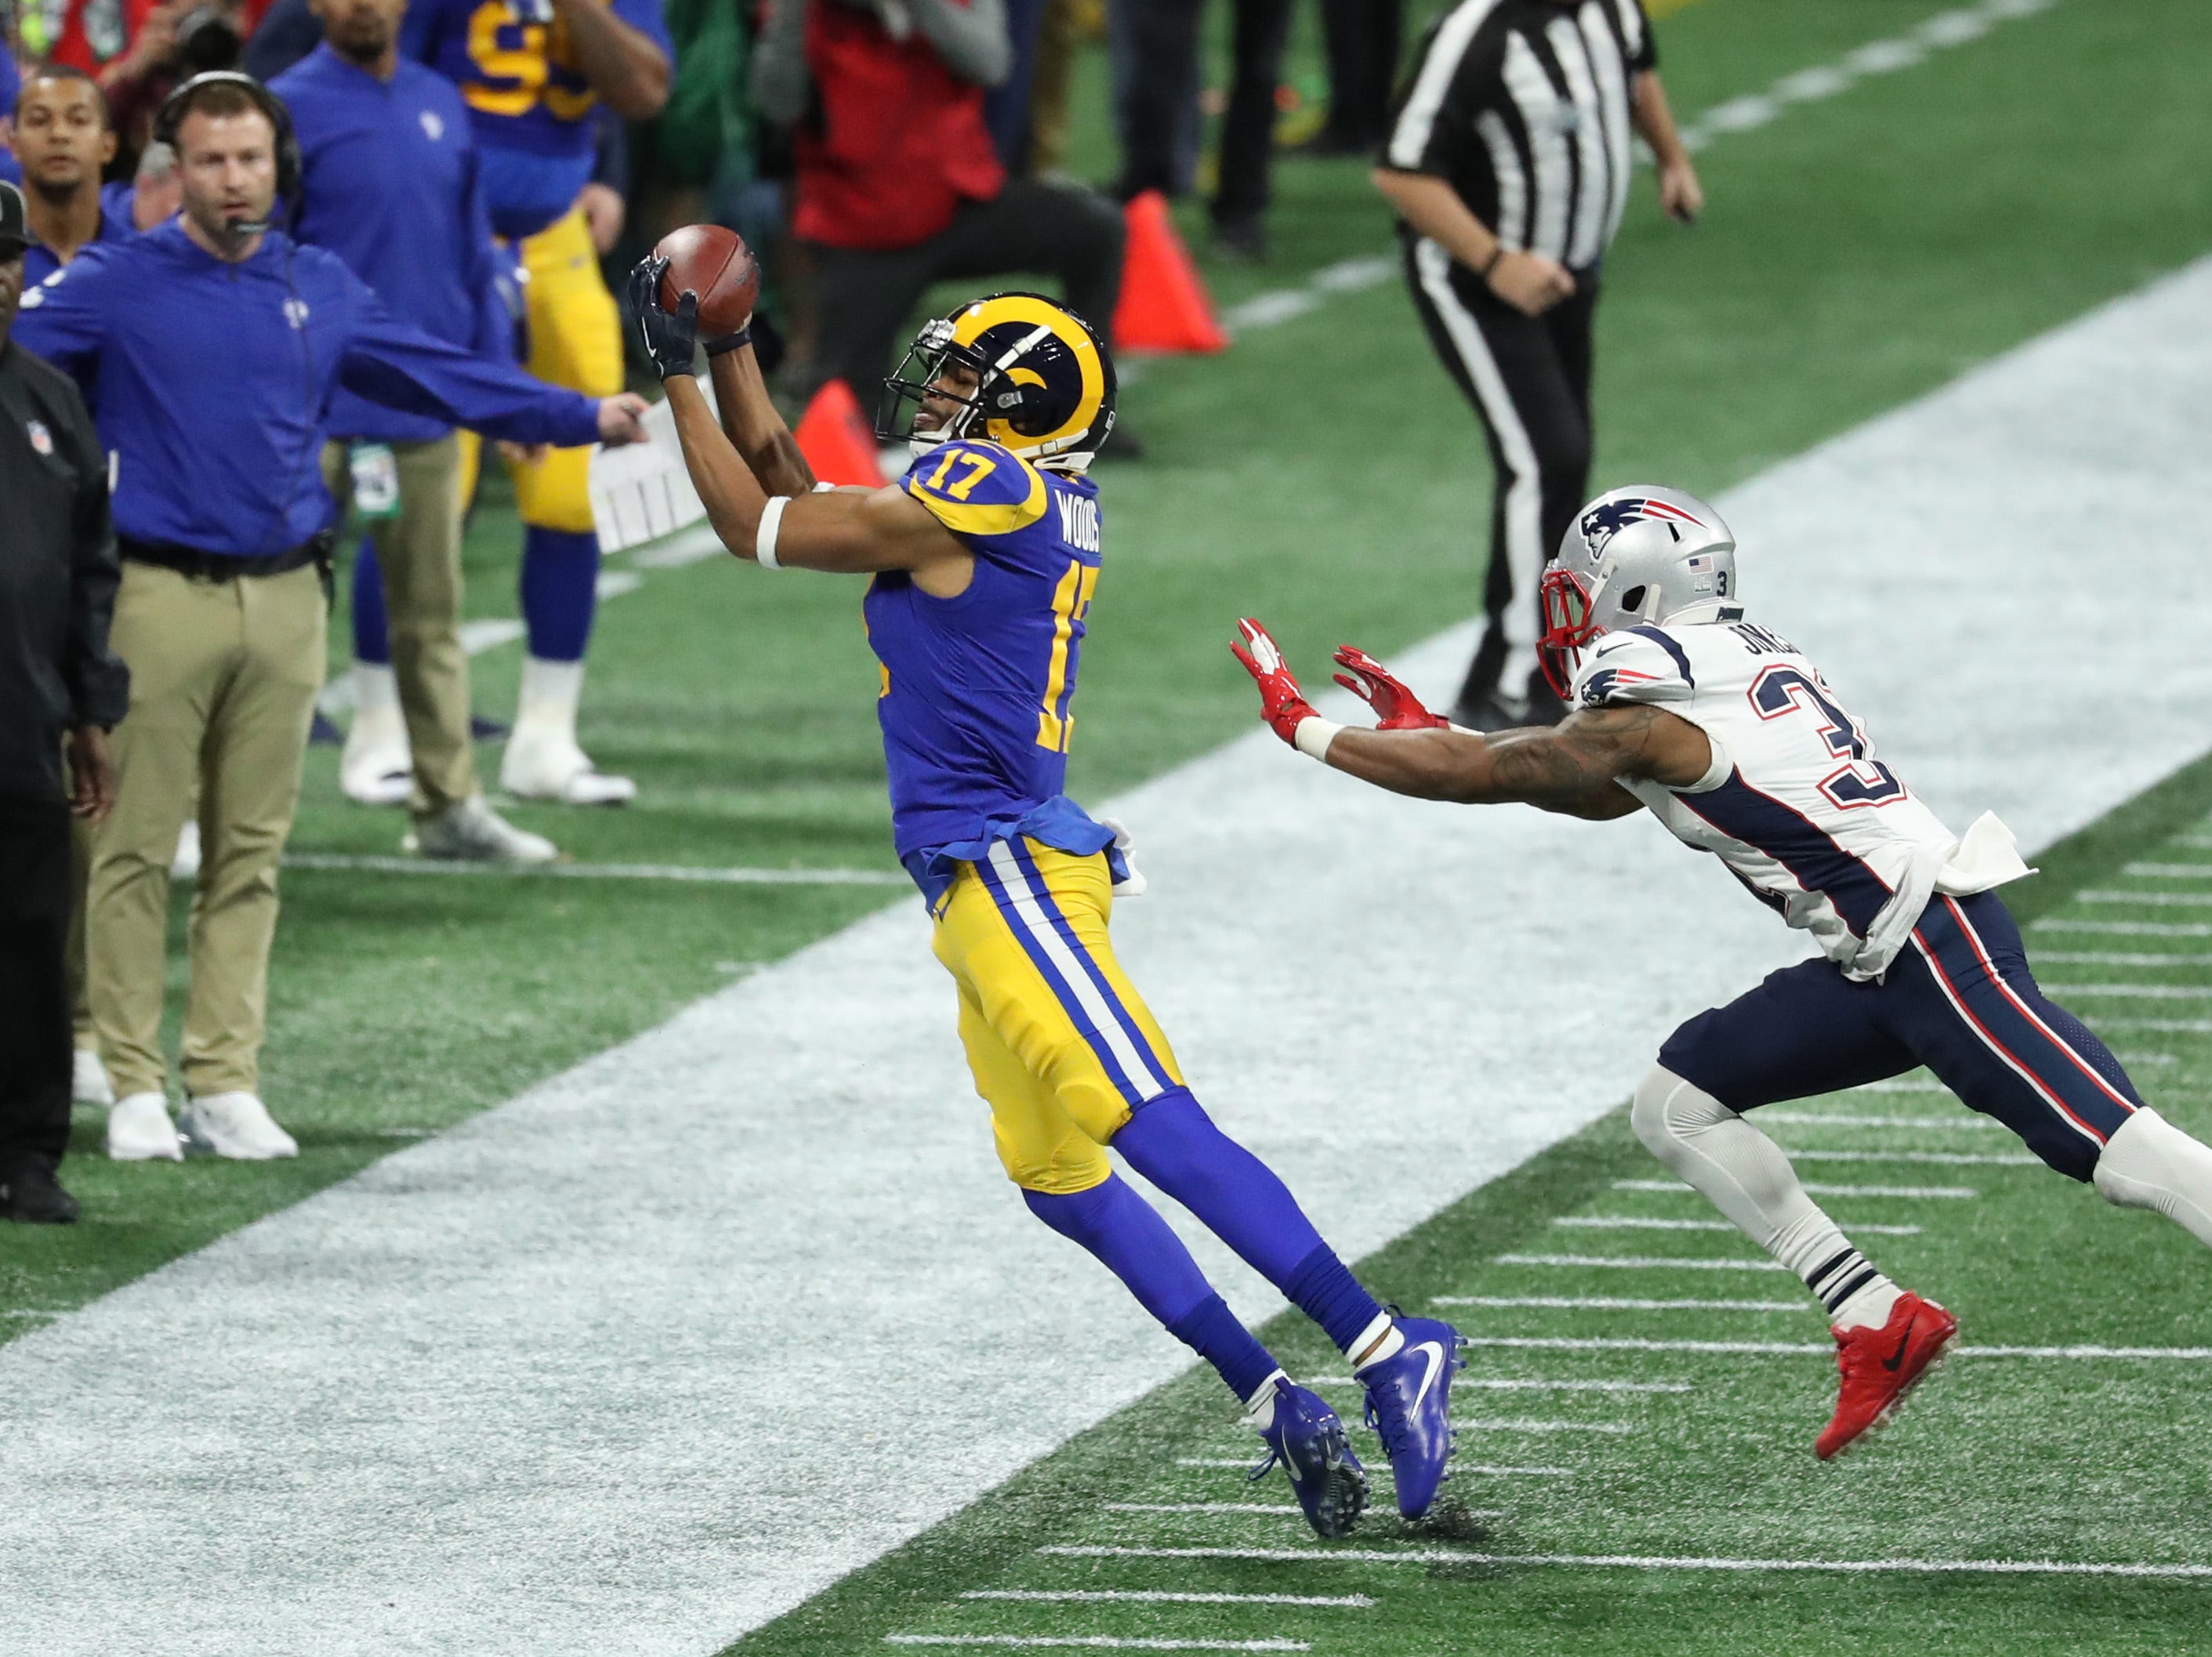 Los Angeles Rams wide receiver Robert Woods (17) catches a pass against New England Patriots defensive back Jonathan Jones (31) and gets both feet inbounds during the second quarter of Super Bowl LIII.